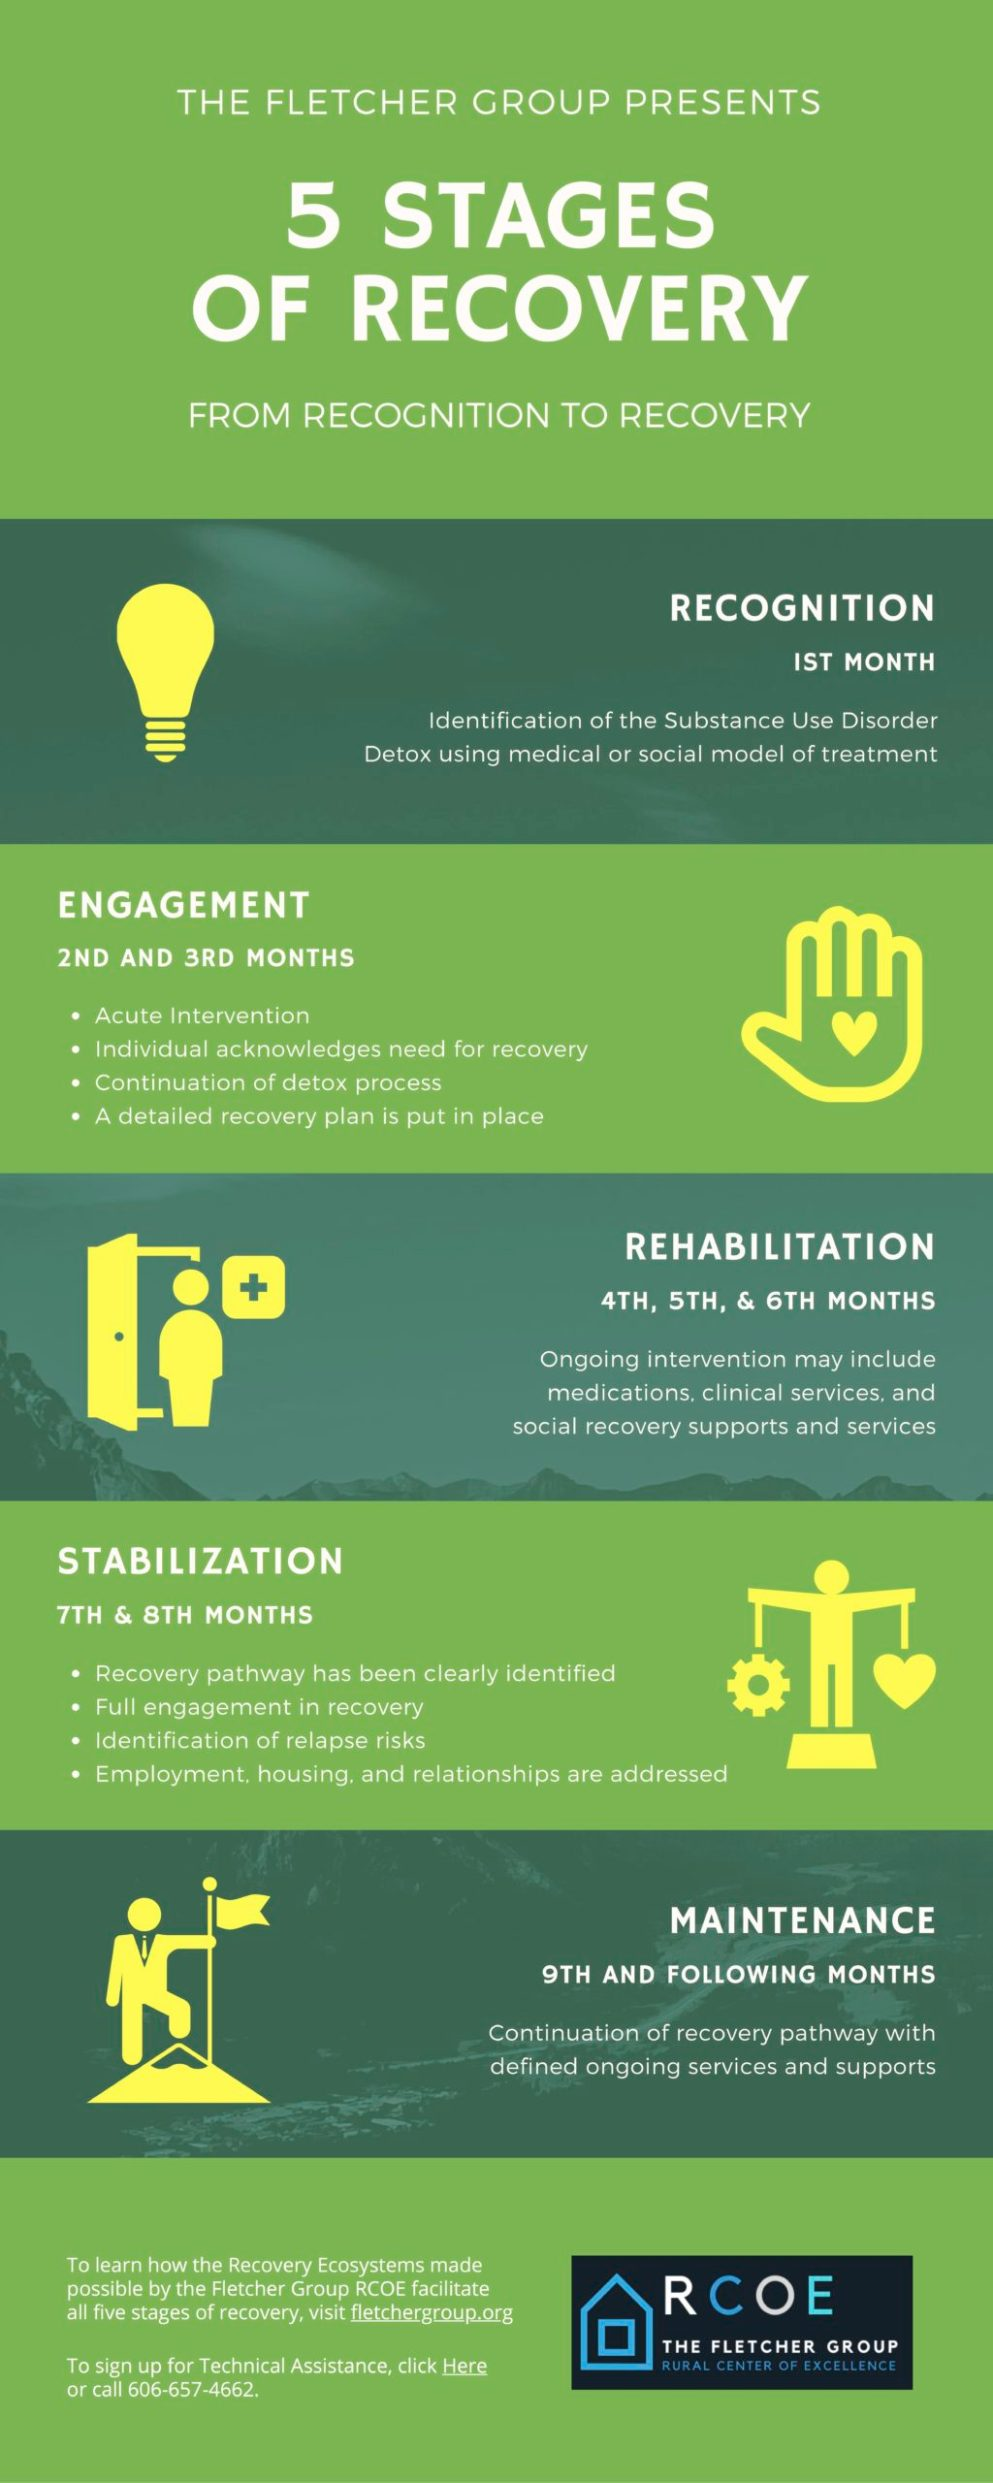 5 STAGES OF RECOVERY INFOGRAPHIC